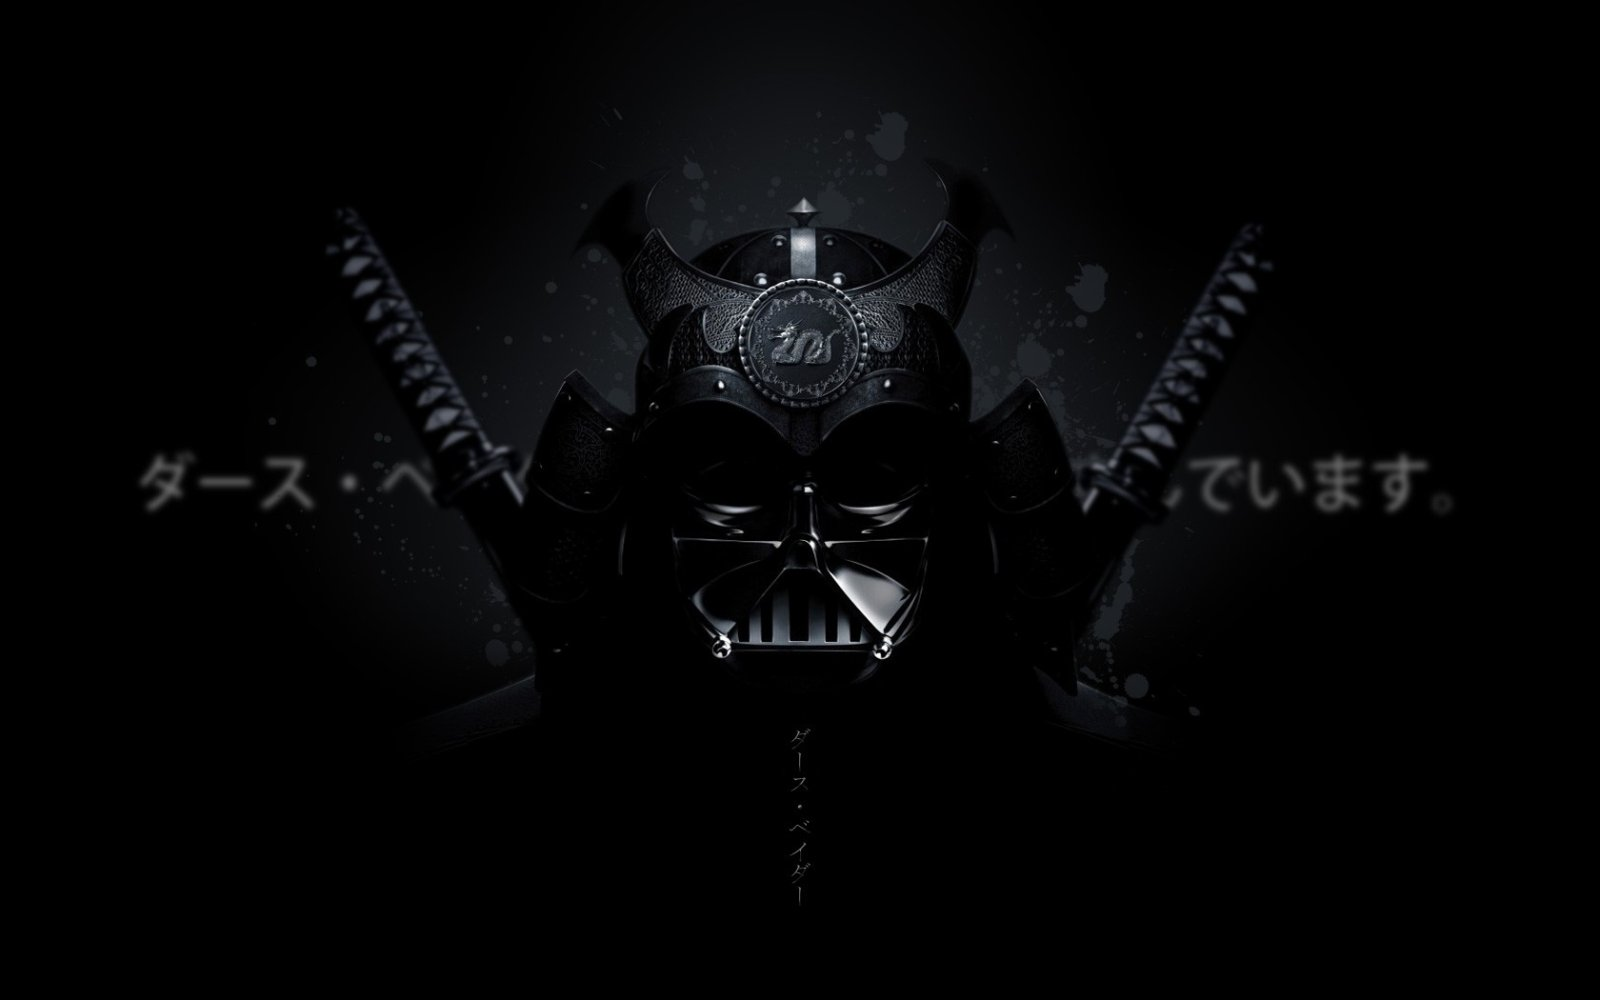 Darth-Vader-Samurai-x-wallpaper-wp5205656